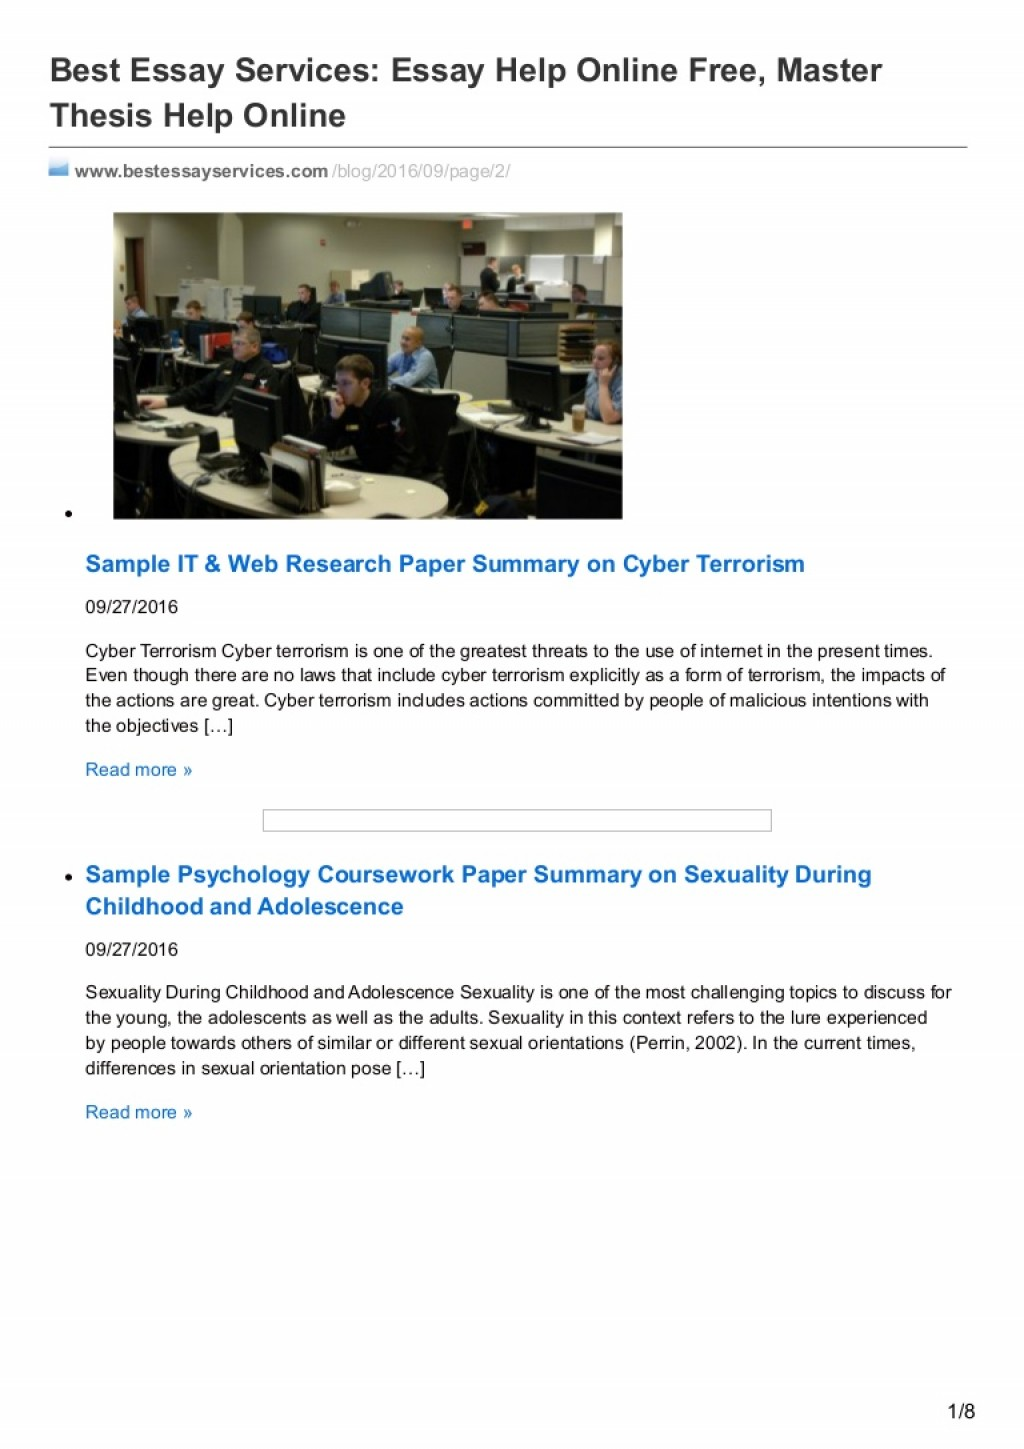 019 Bestessayservices Thumbnail Research Paper Cyber Terrorism Imposing Essay Large